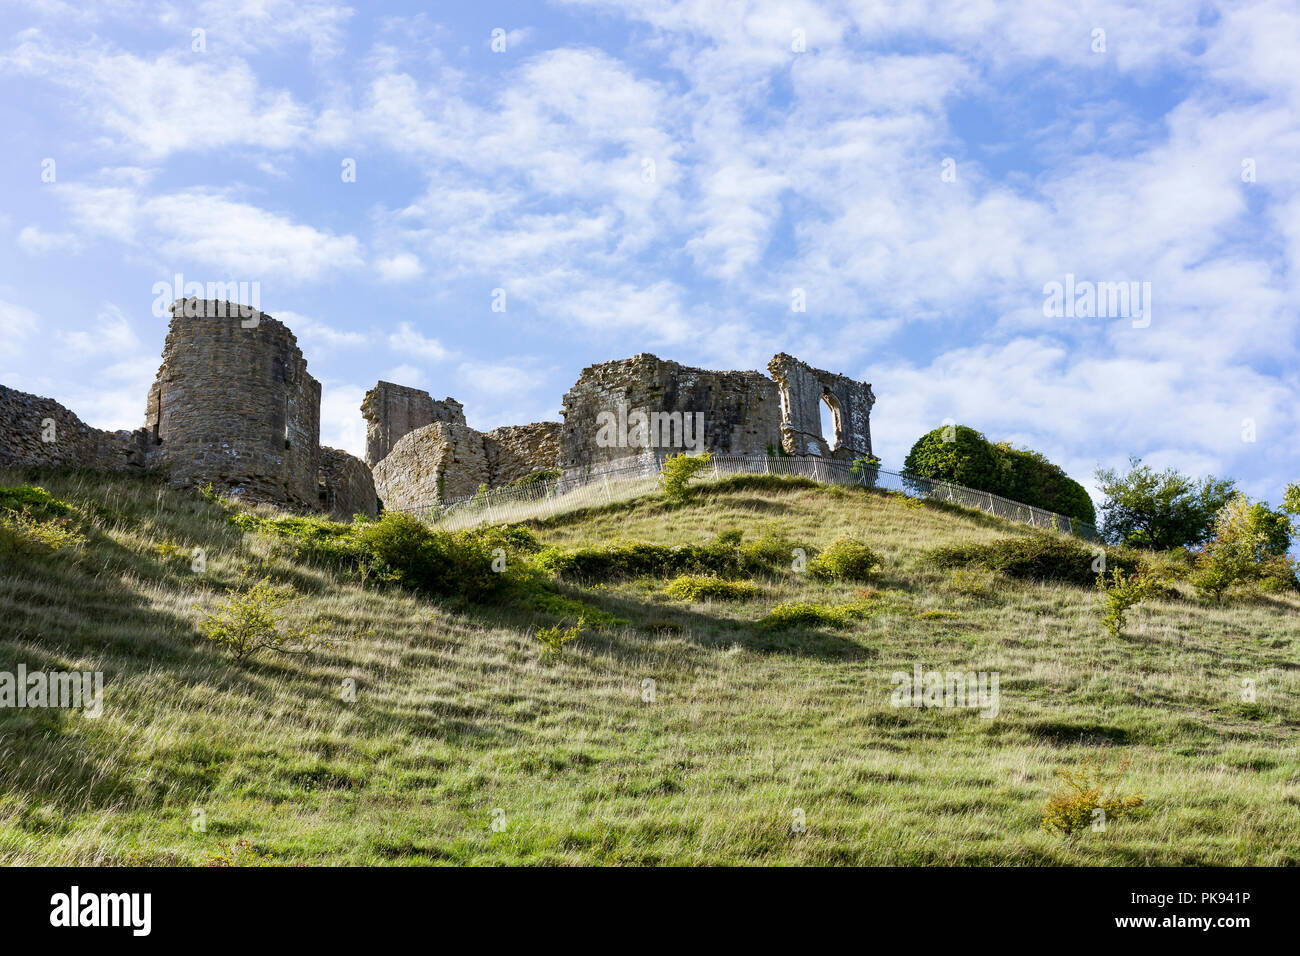 Corfe Castle, view of the castle ruins from the public road below, Dorset, UK - Stock Image